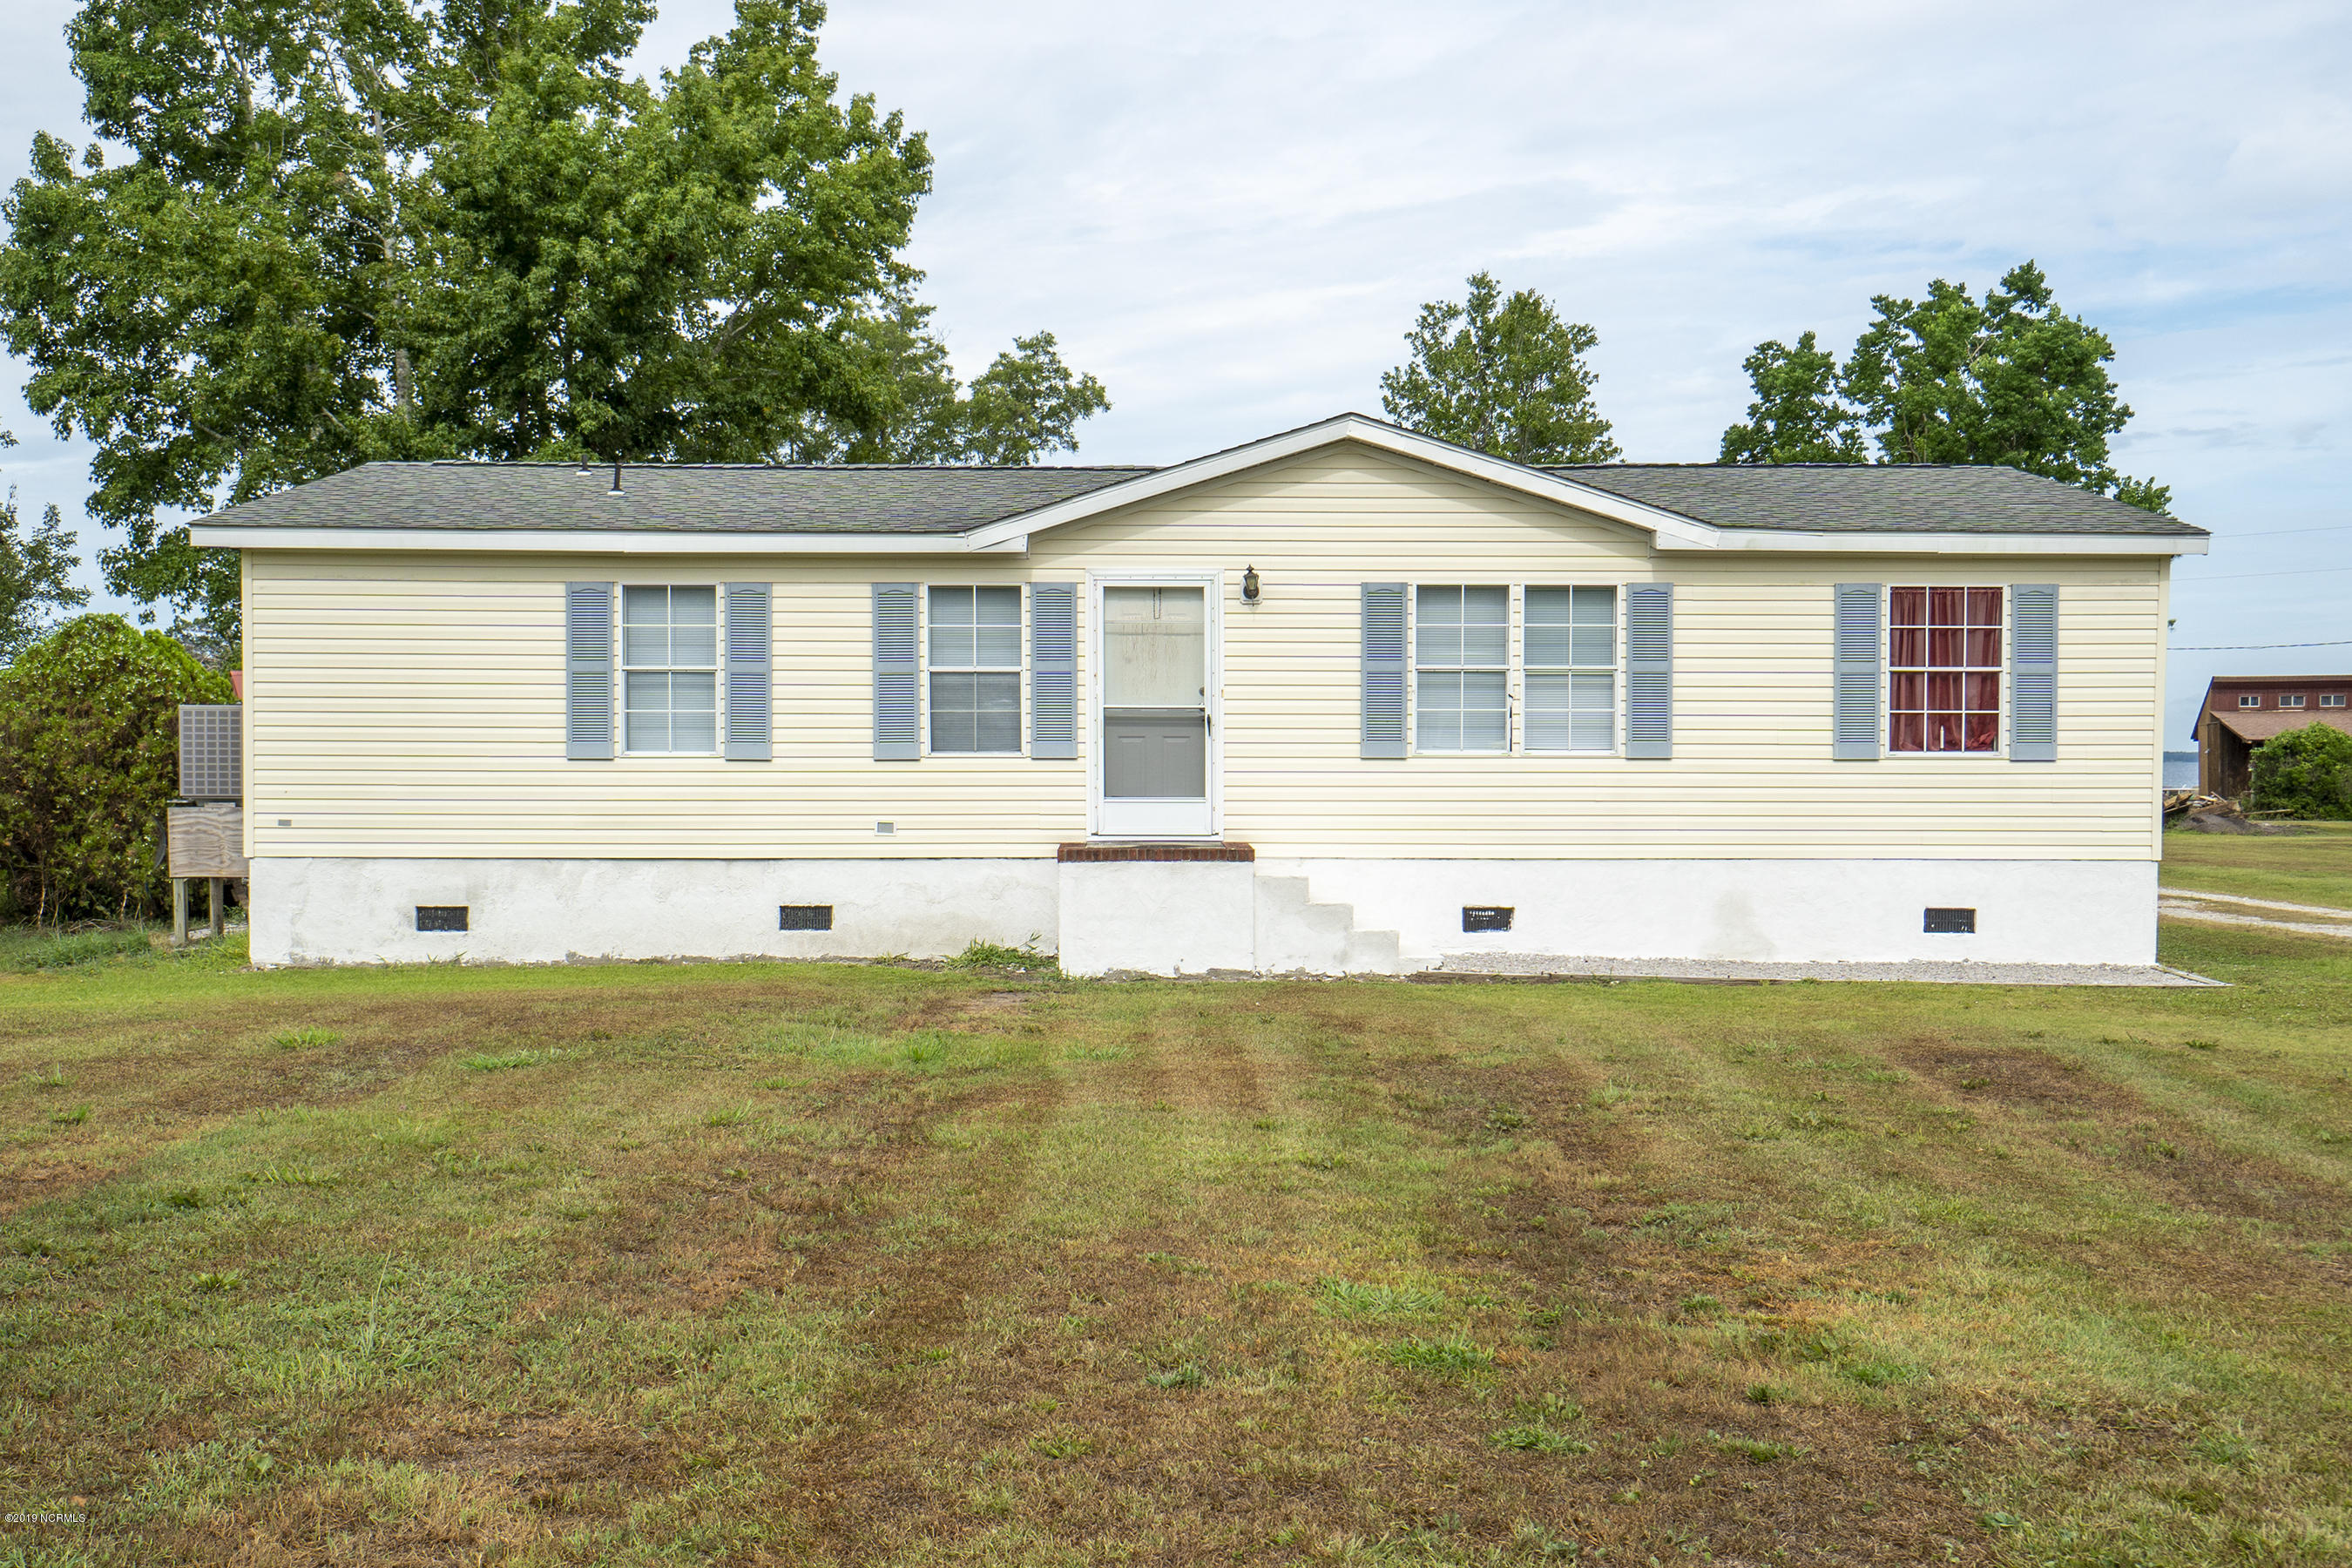 156 Great Neck Road, Havelock, North Carolina 28532, 3 Bedrooms Bedrooms, 7 Rooms Rooms,2 BathroomsBathrooms,Manufactured home,For sale,Great Neck,100178812